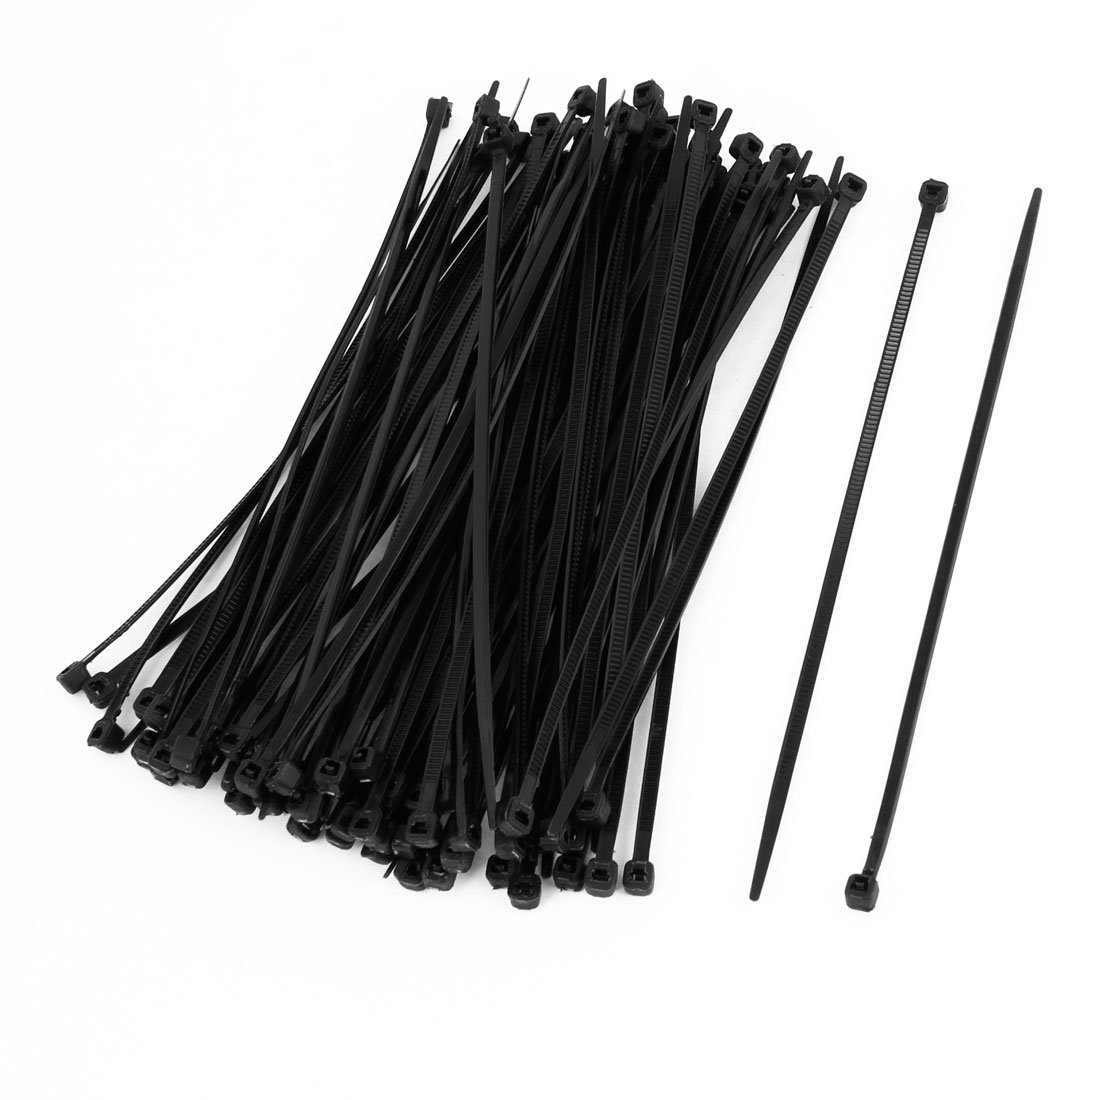 WSFS Wholesale 2 X 100 Pcs 150mm x 2mm Electrical Cable Tie Wrap Nylon Fastening Black<br><br>Aliexpress